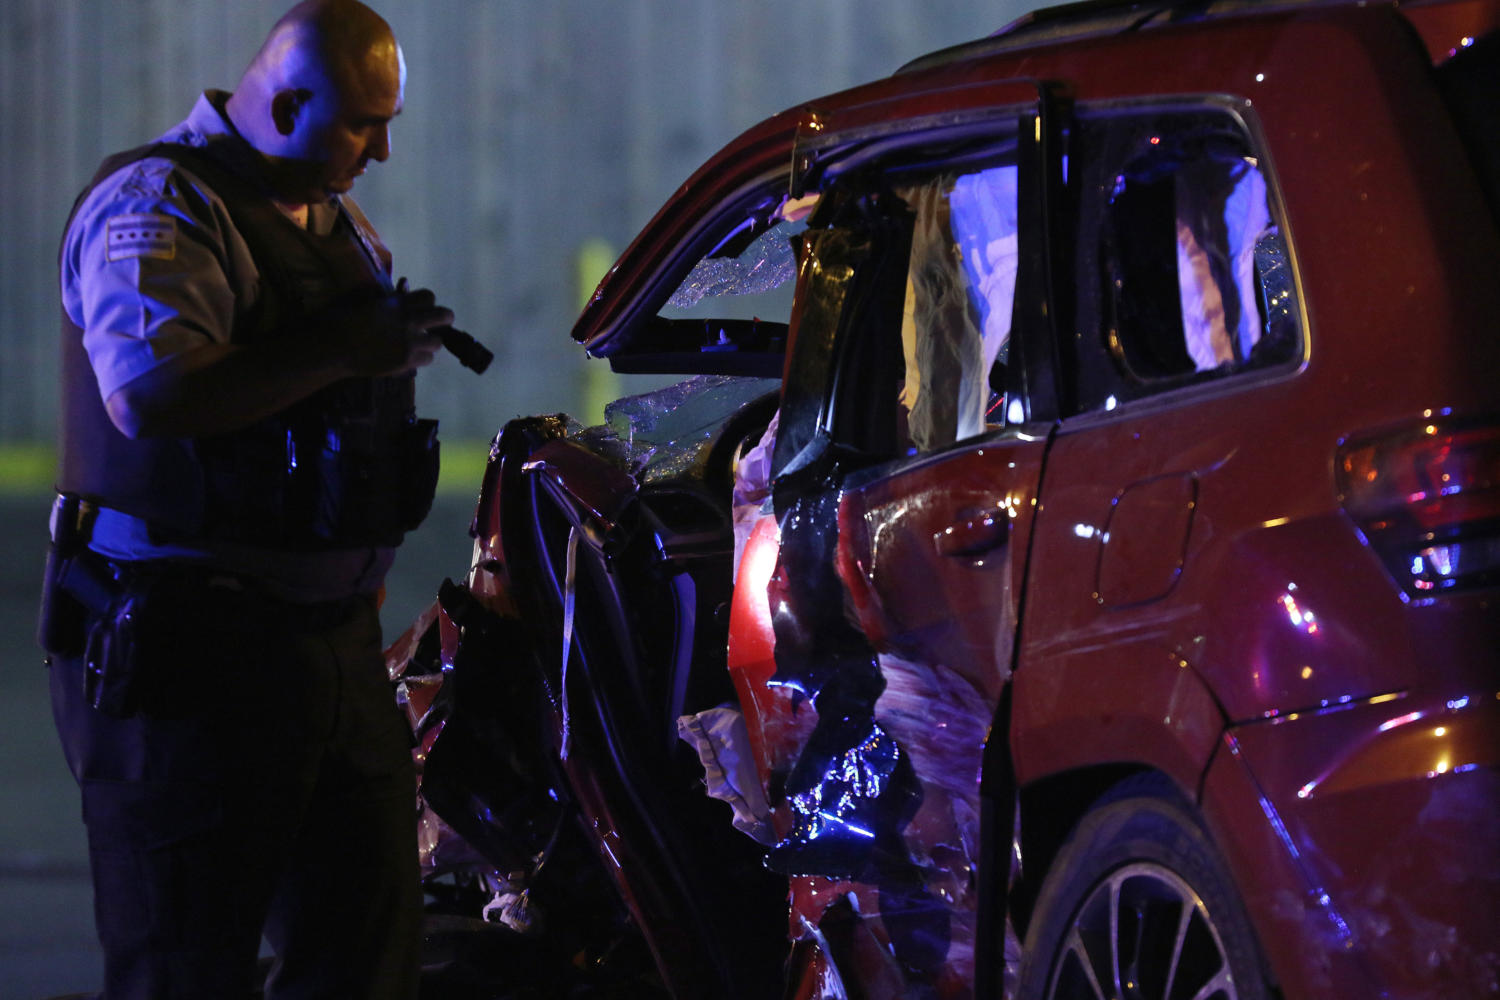 A police officer looks at one of the vehicles involved in a multi-vehicle crash in the 3700 block of West Roosevelt Road that followed a shooting on Saturday, July 8, 2017, in Chicago, Ill. At least three vehicles were involved in the crash, and at least six people were transported to area hospitals, including three gunshot victims. (John J. Kim/Chicago Tribune/TNS)